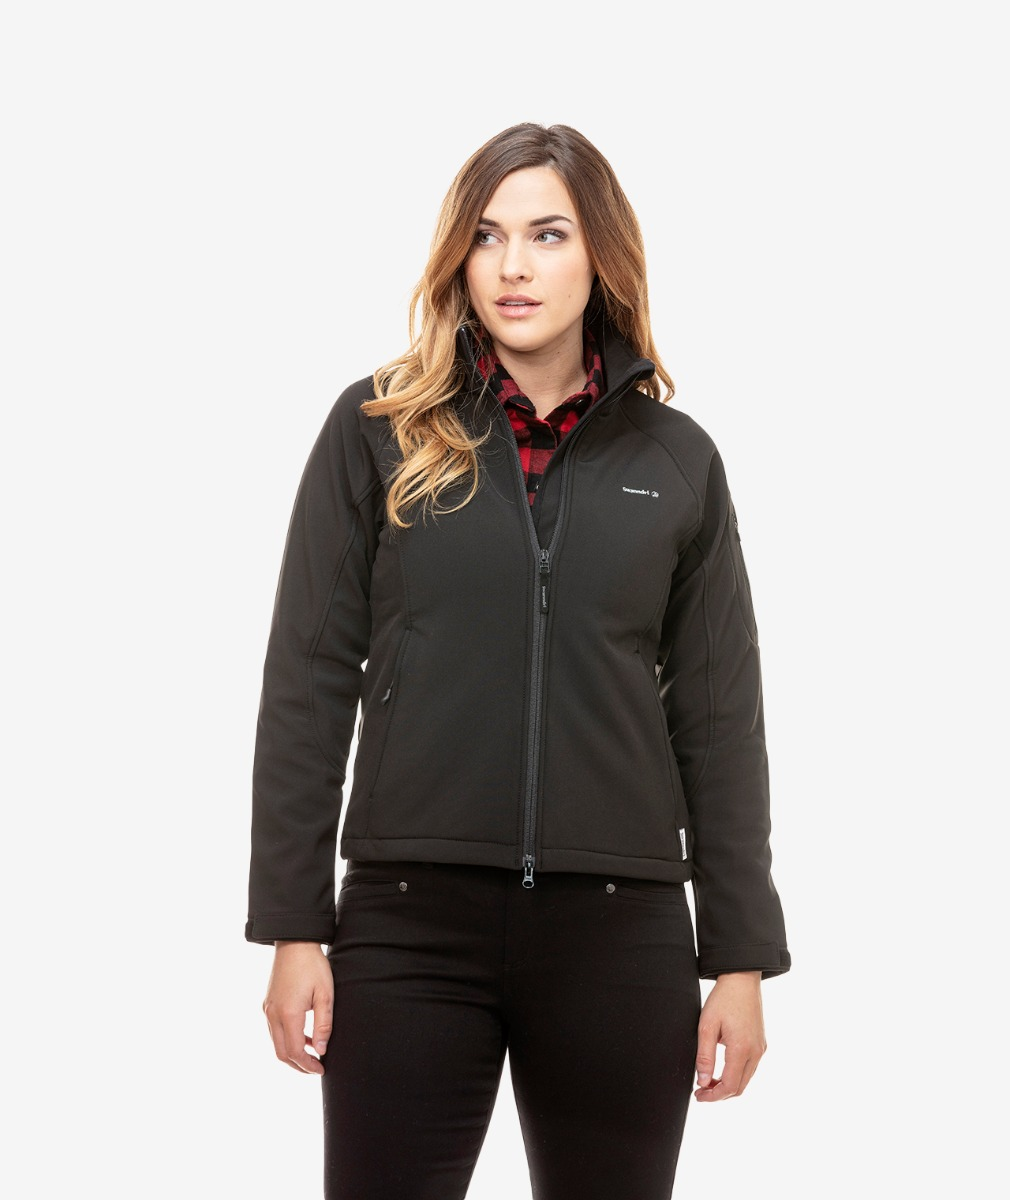 Swanndri Women's Ashbury Softshell Jacket with Fleece Lining